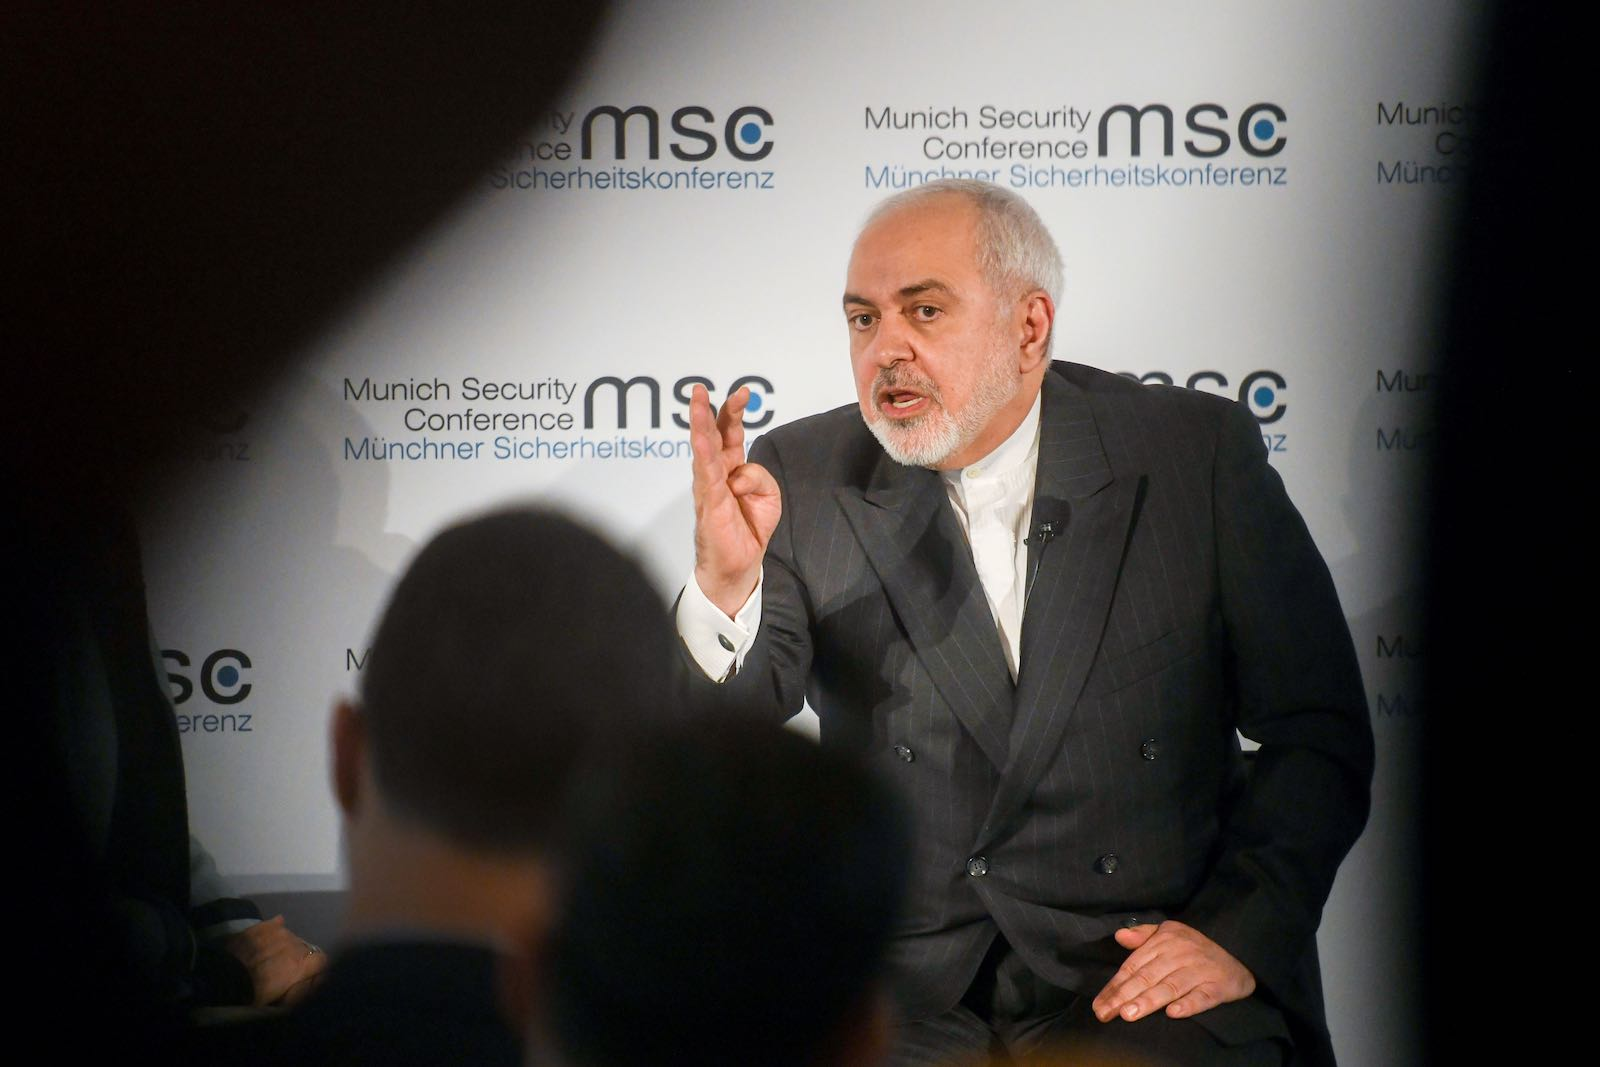 Iranian foreign minister Javad Zarif at the Munich Security Conference, 15 February (Tobias Hase/Picture Alliance via Getty Images)